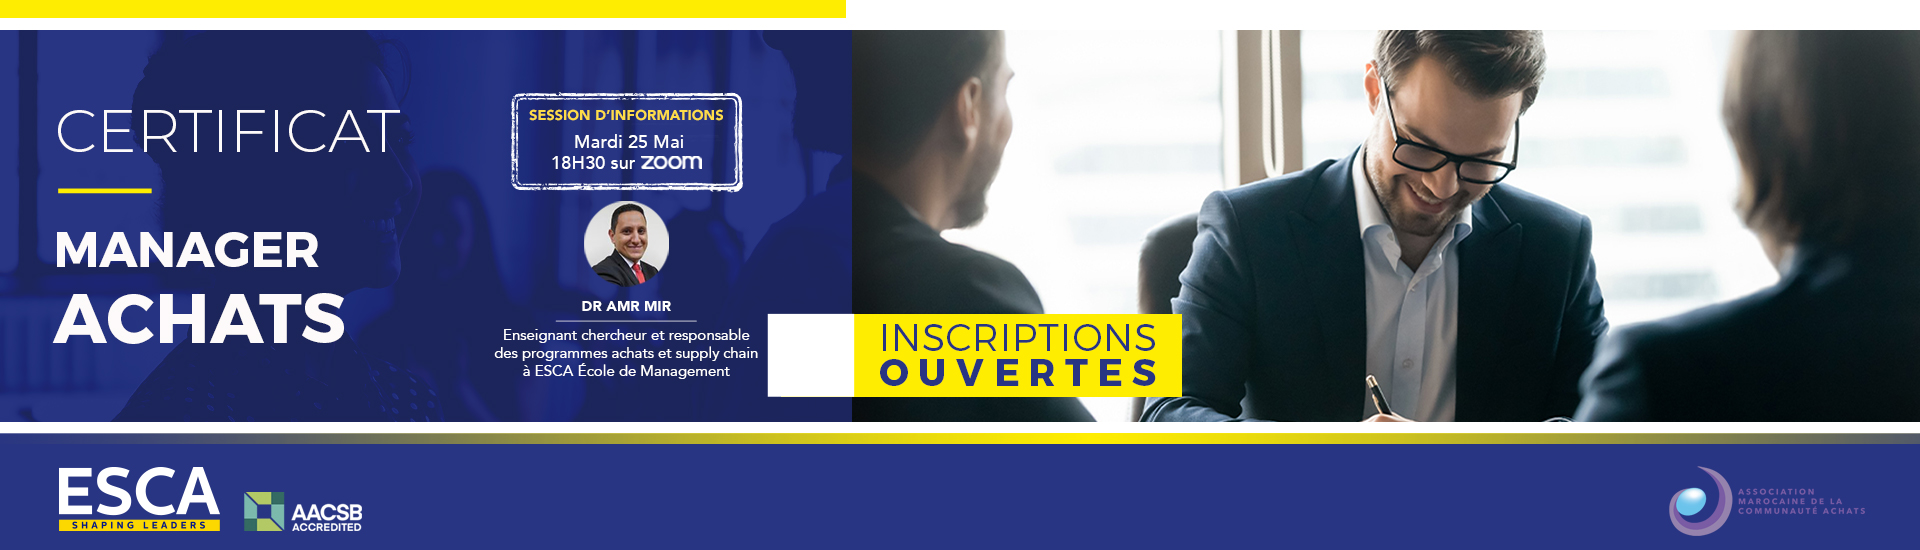 Session d'informations : Certificat Manager Achats